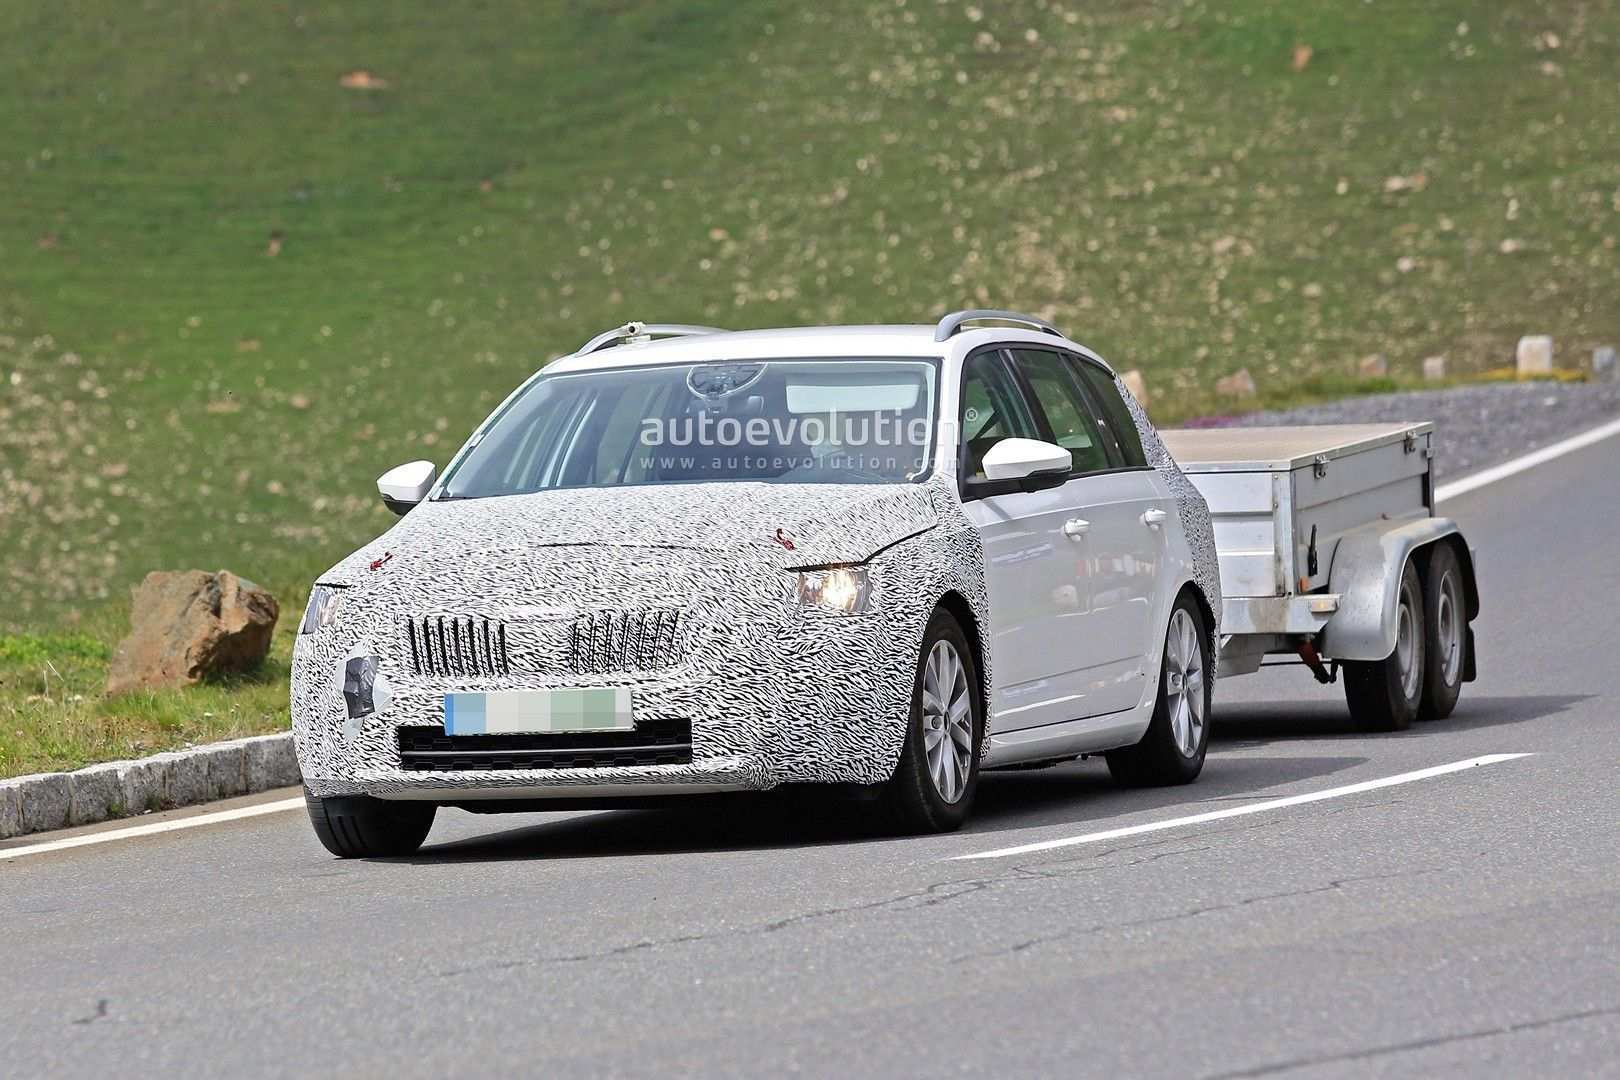 91 New Spy Shots Skoda Superb Performance And New Engine